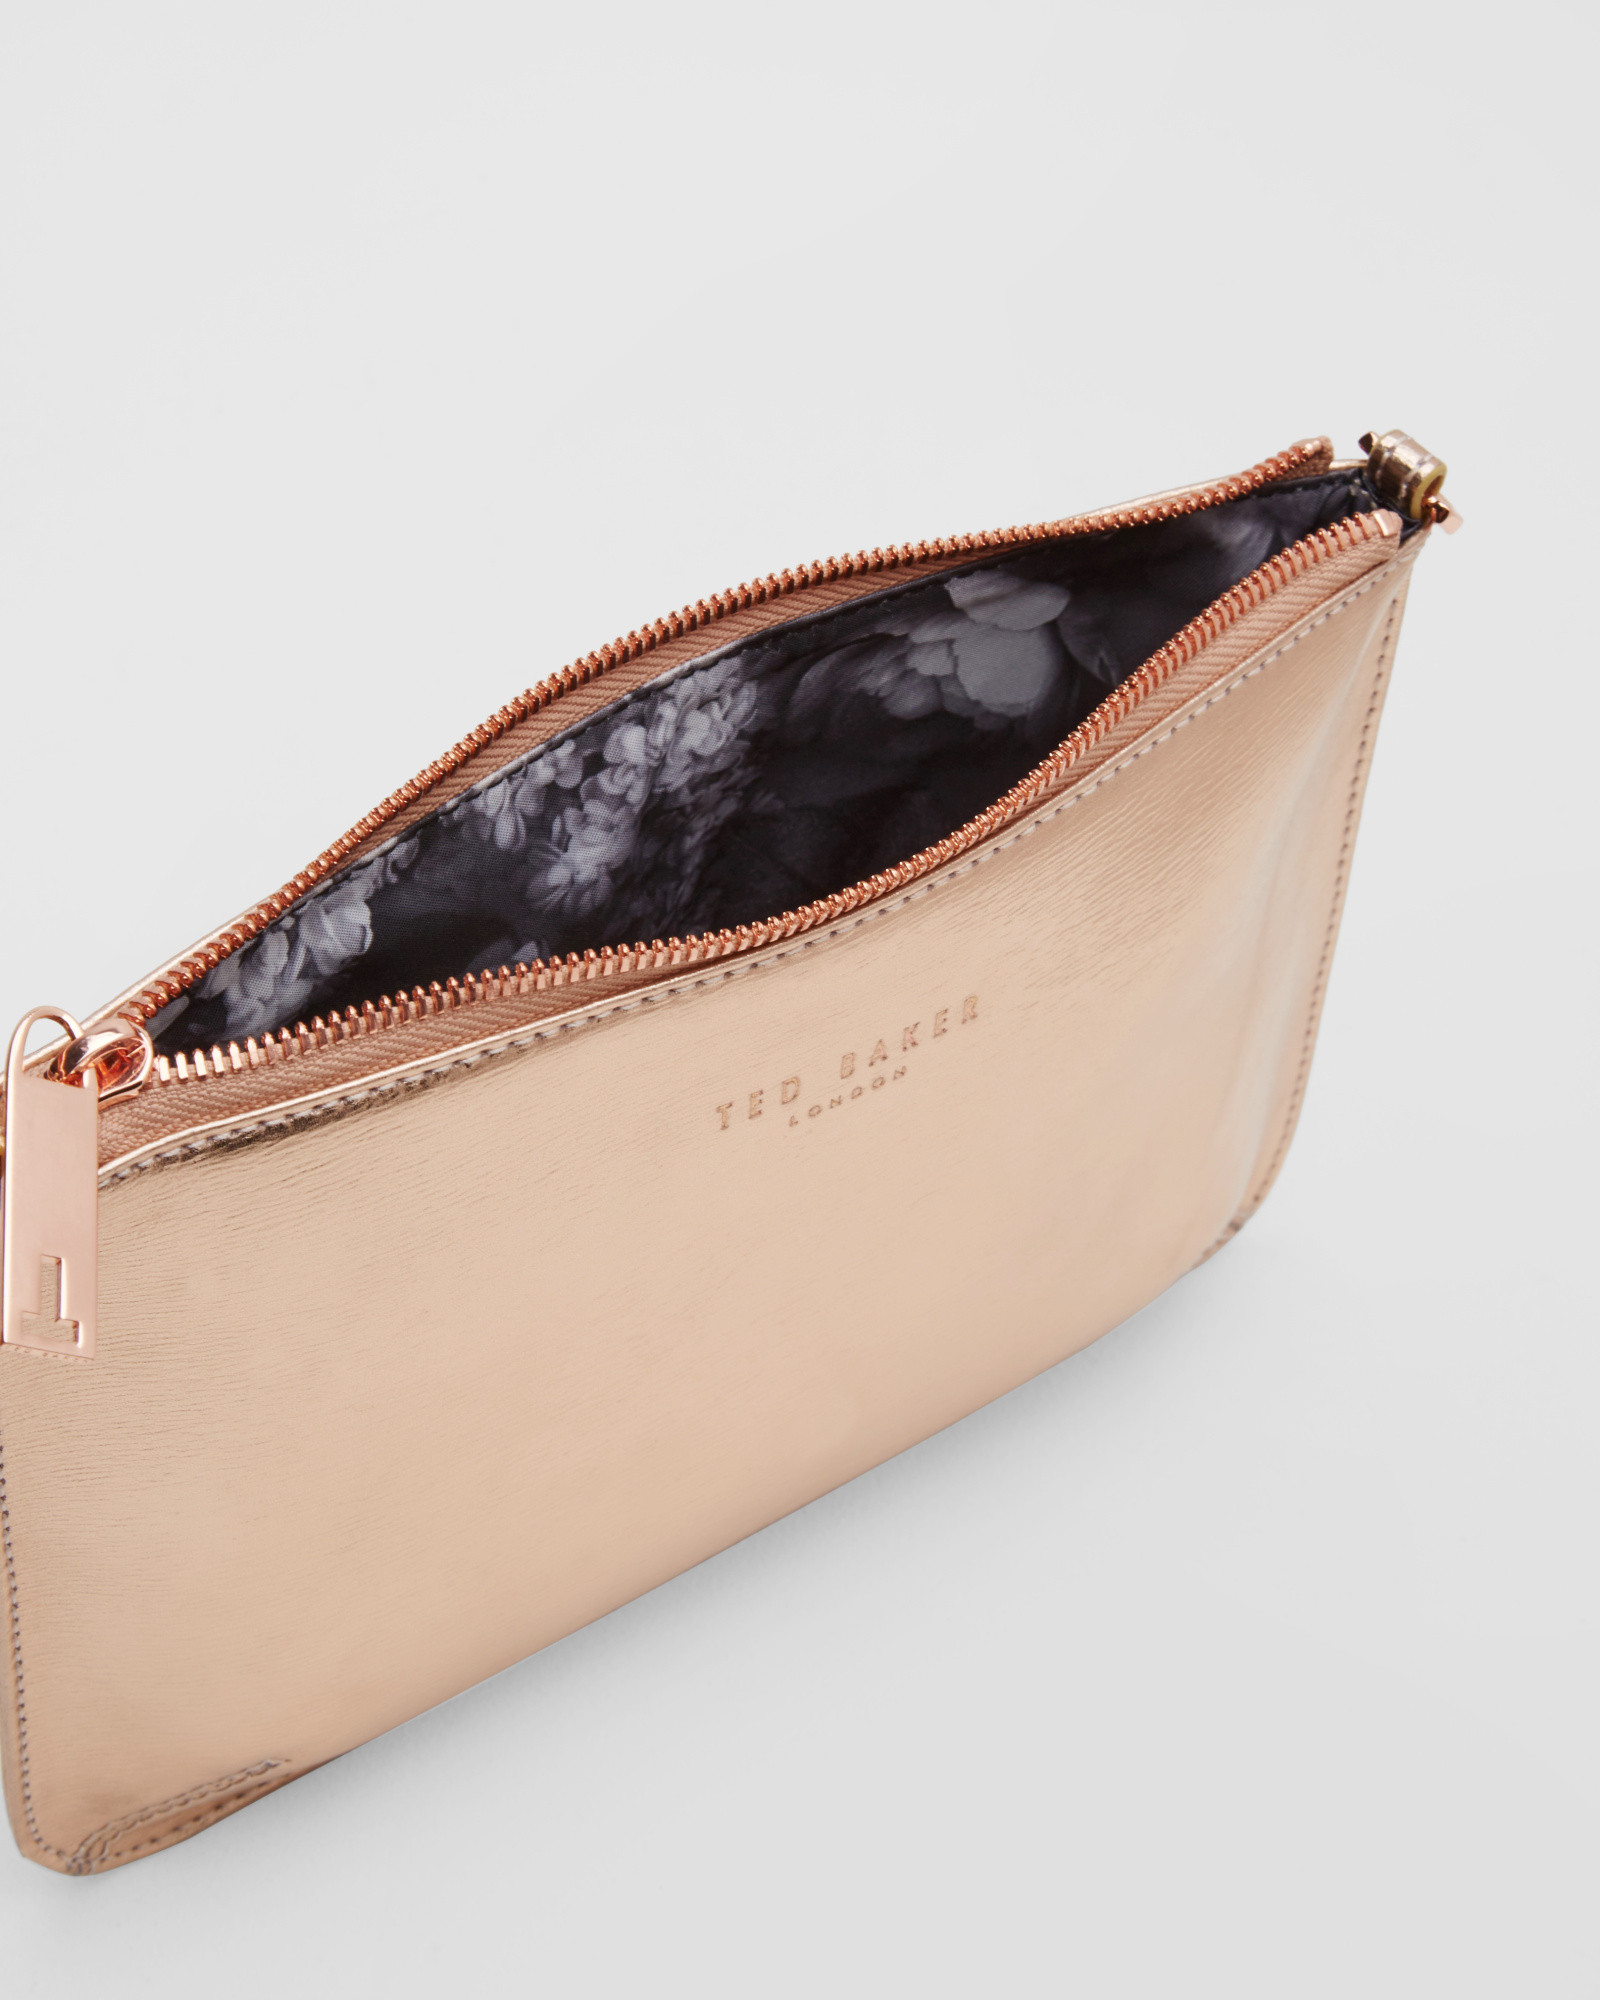 ee9fc3ad0957e2 Ted Baker Crosshatch Leather Clutch Bag in Pink - Lyst